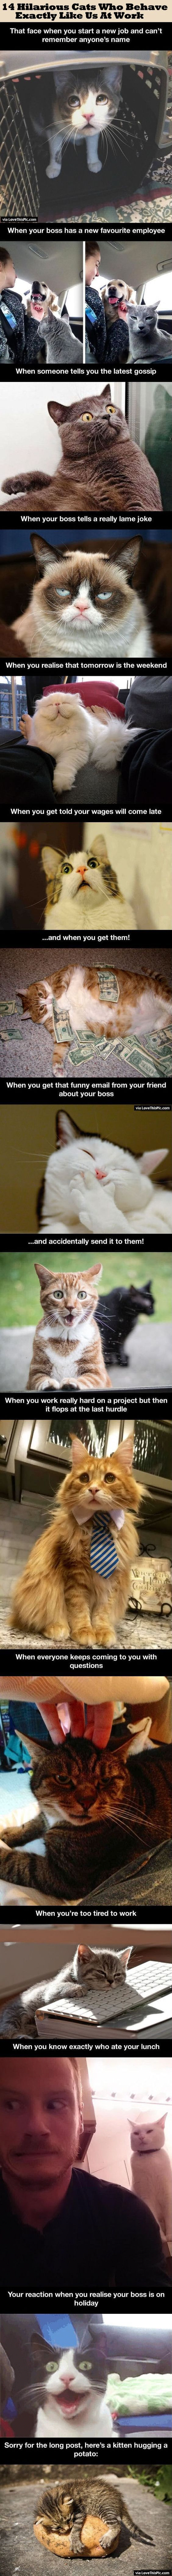 14 Hilarious Cats Who Behave Exactly Like Us At Work cute animals cat cats adorable animal kittens pets kitten funny pictures funny animals funny cats: